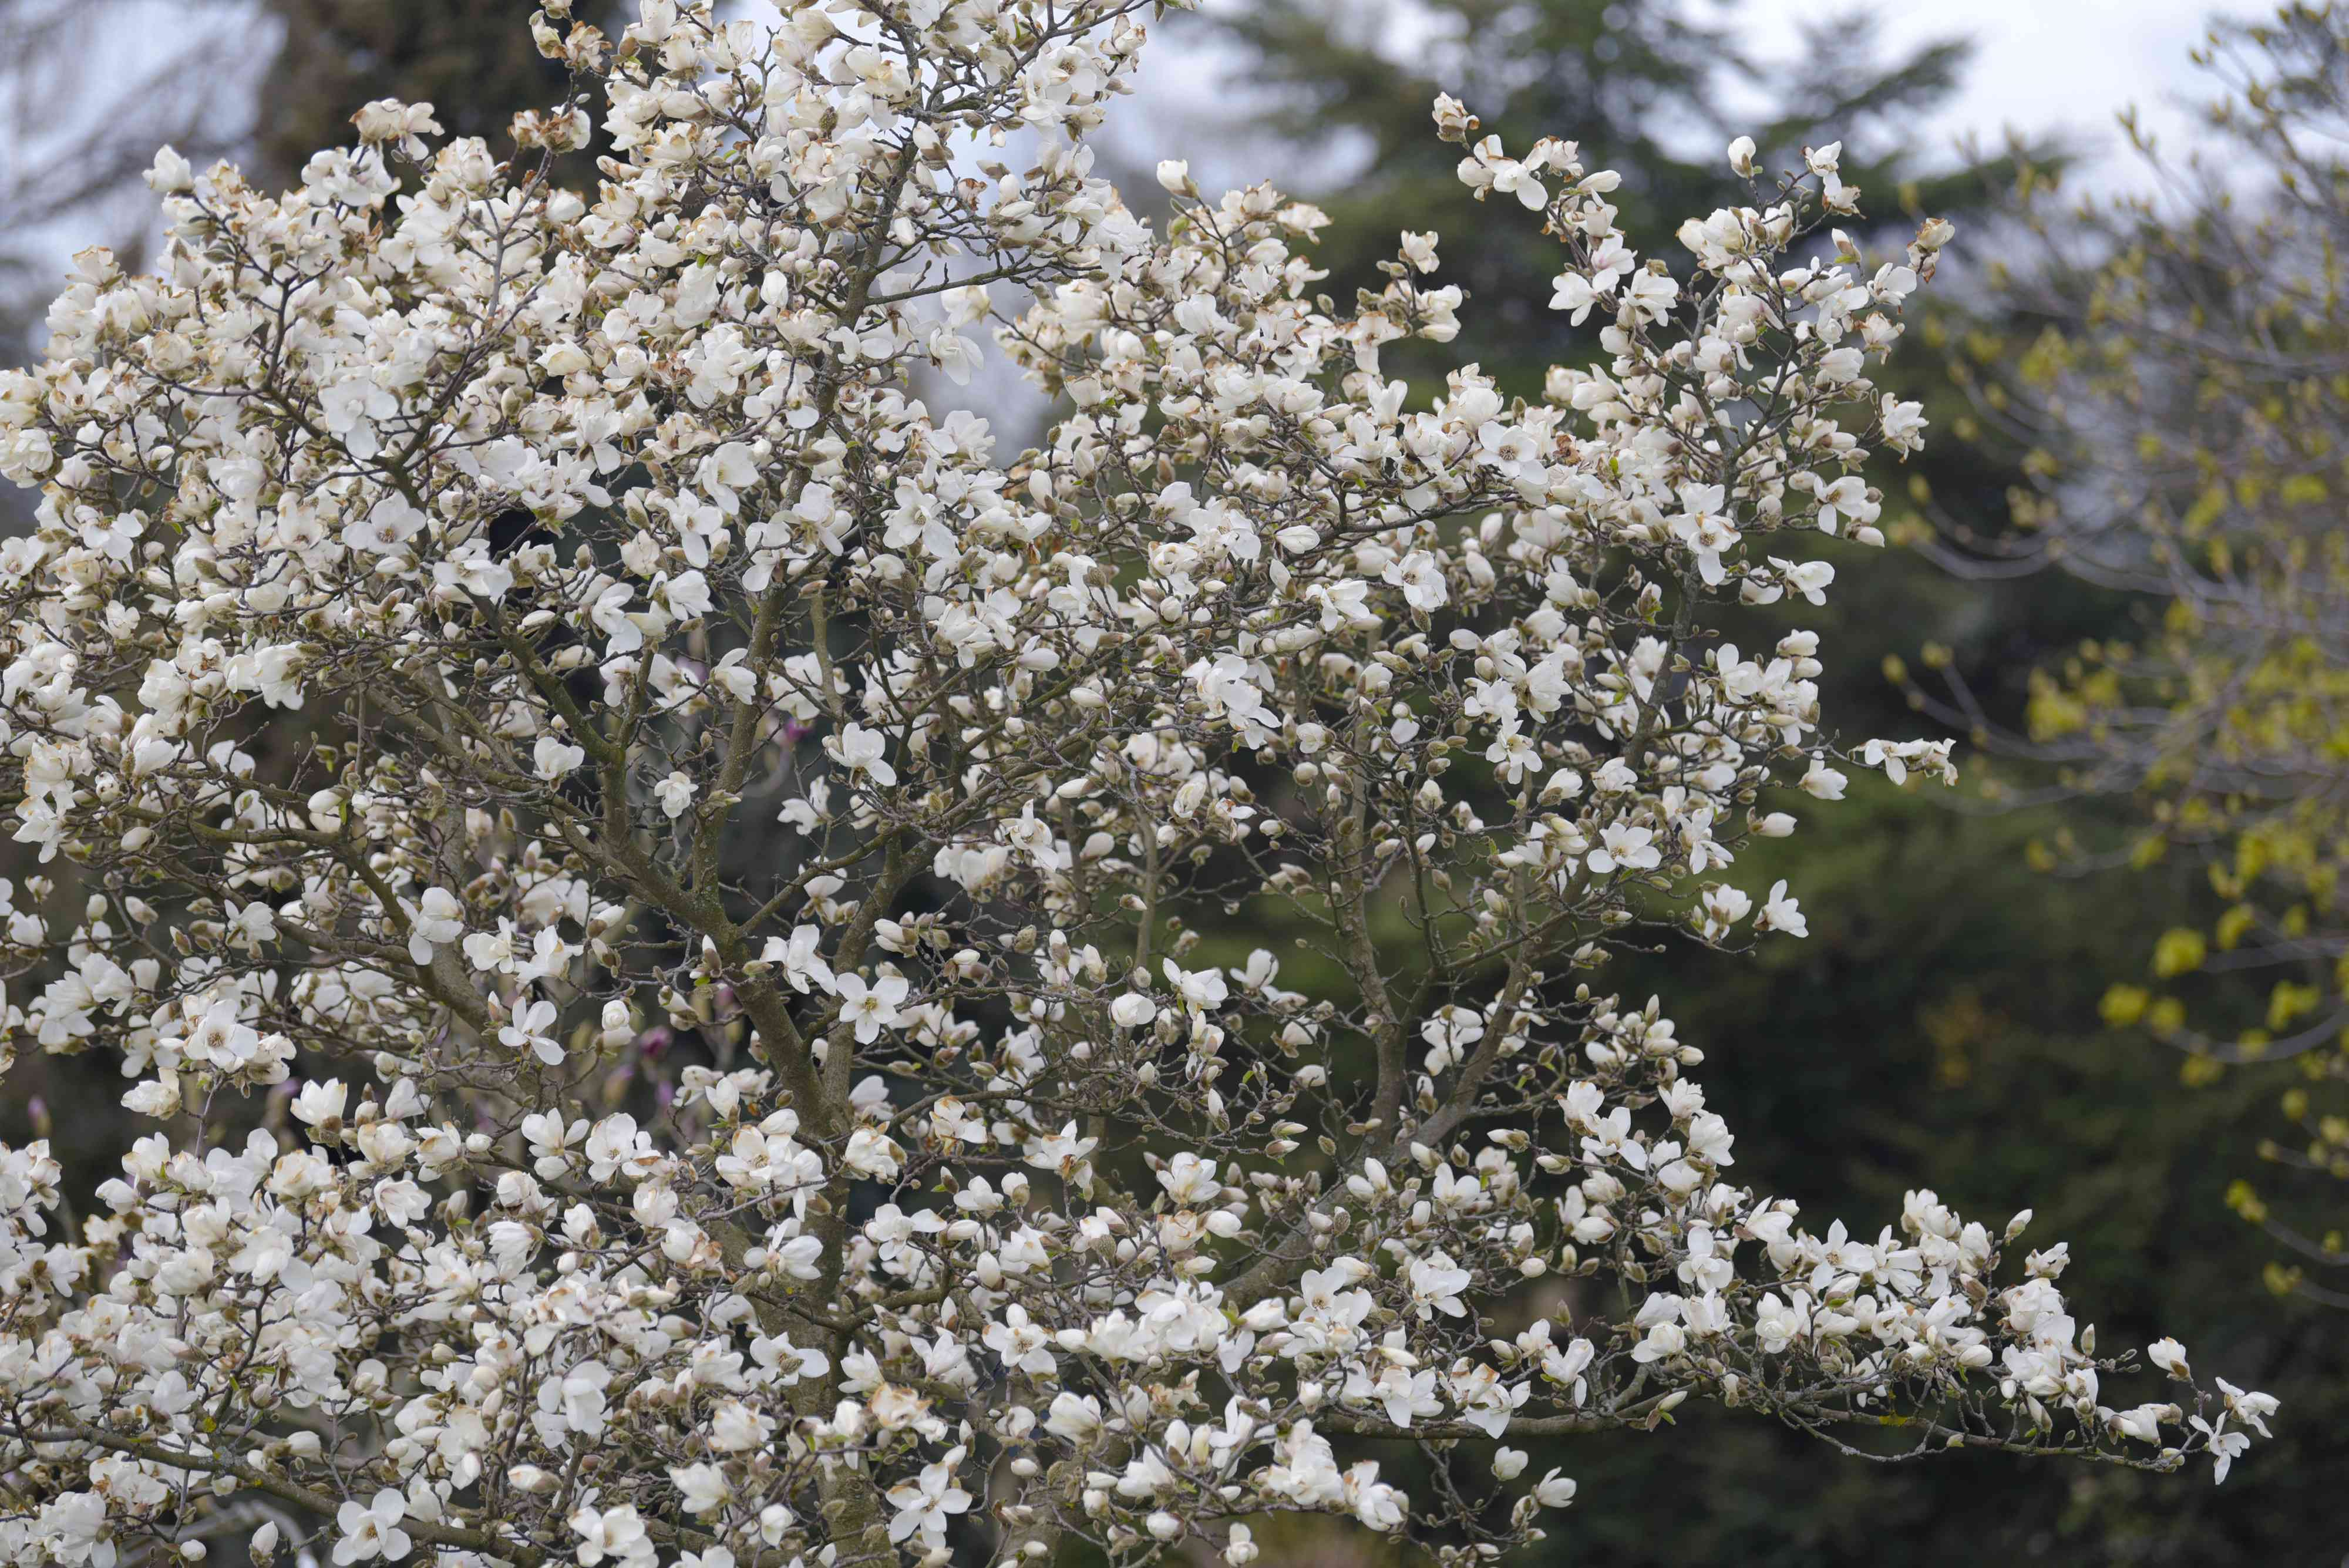 Kobus magnolia tree top with white flowers covering branches